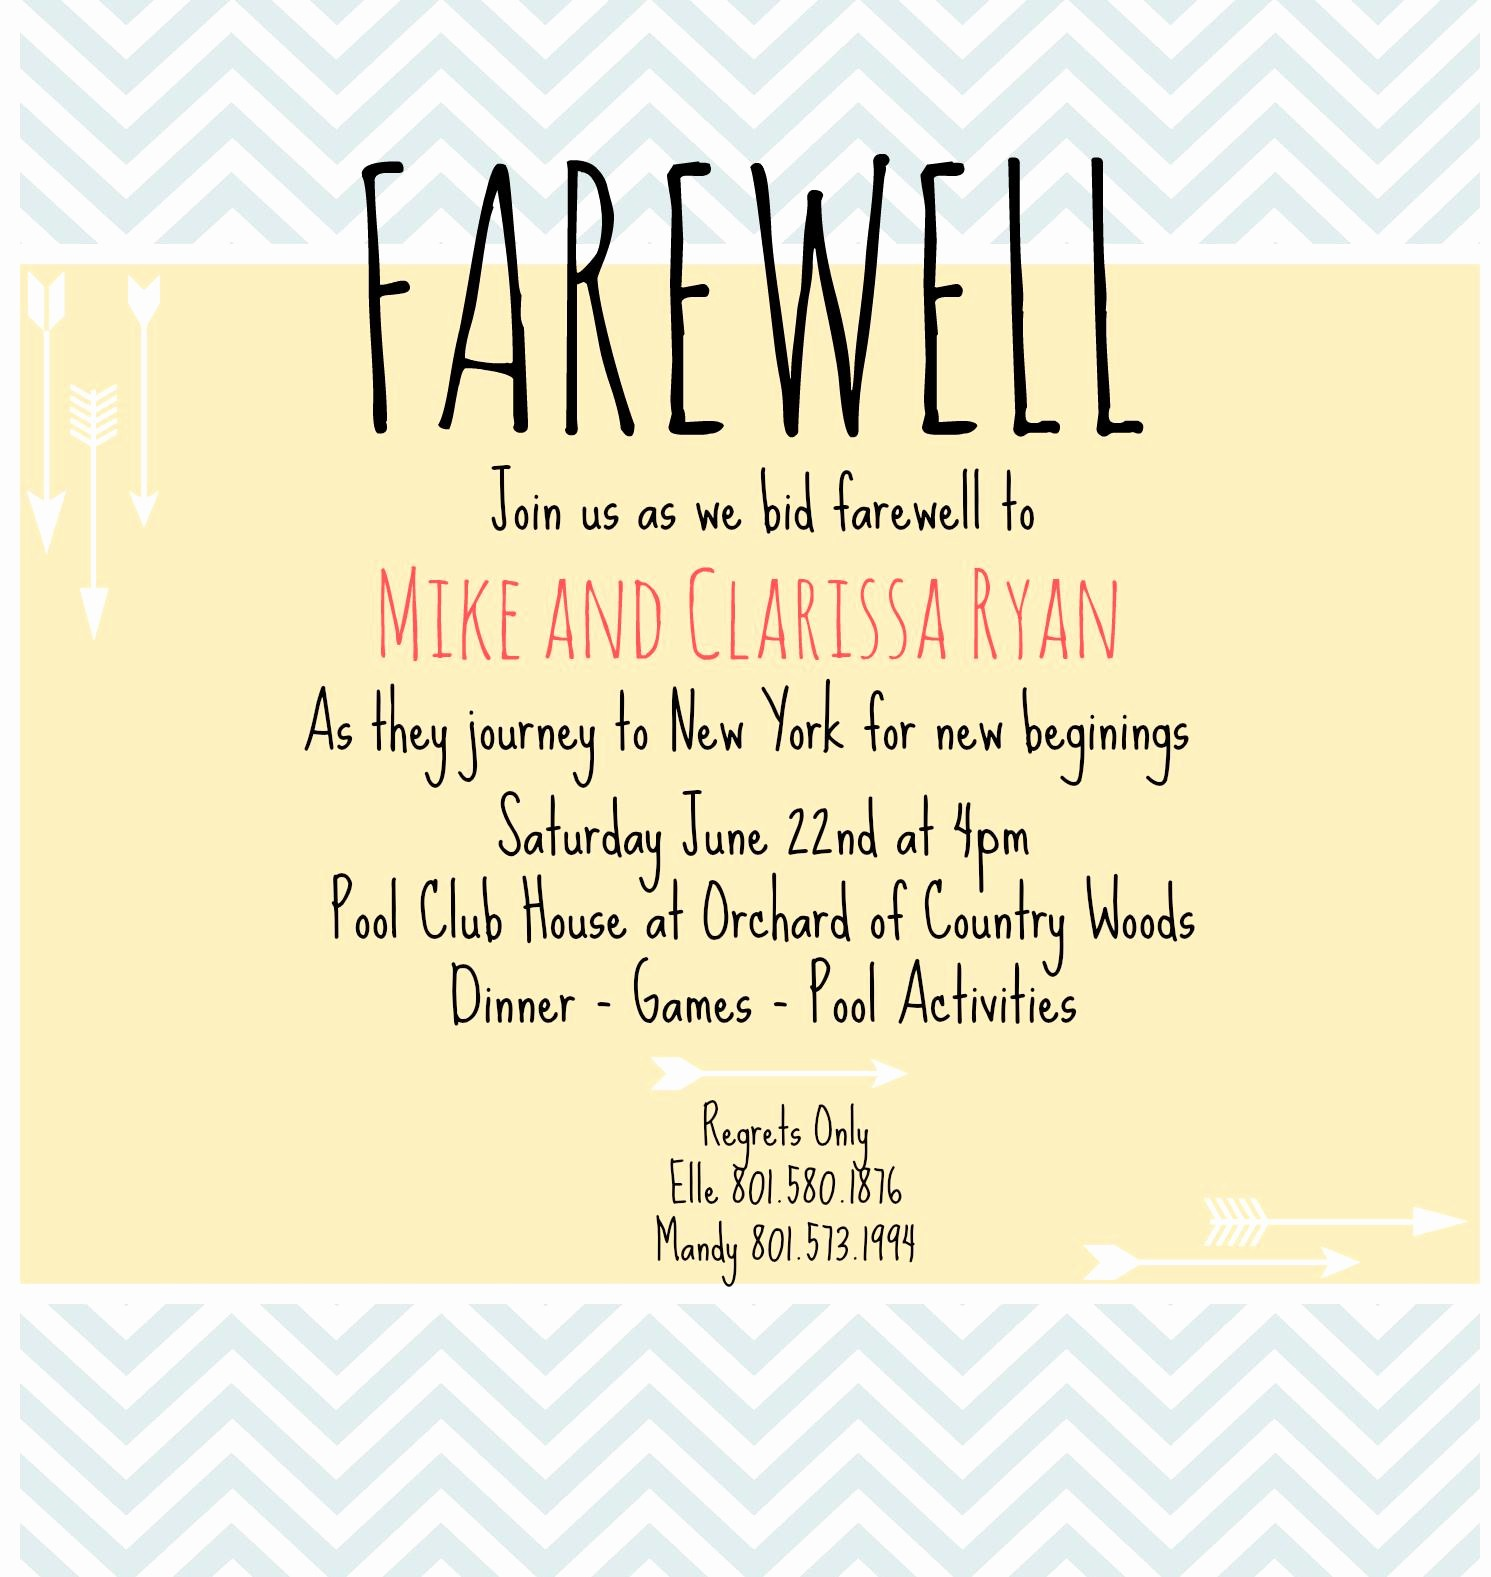 Going Away Flyer Template Free Inspirational Going Away Party Invitations